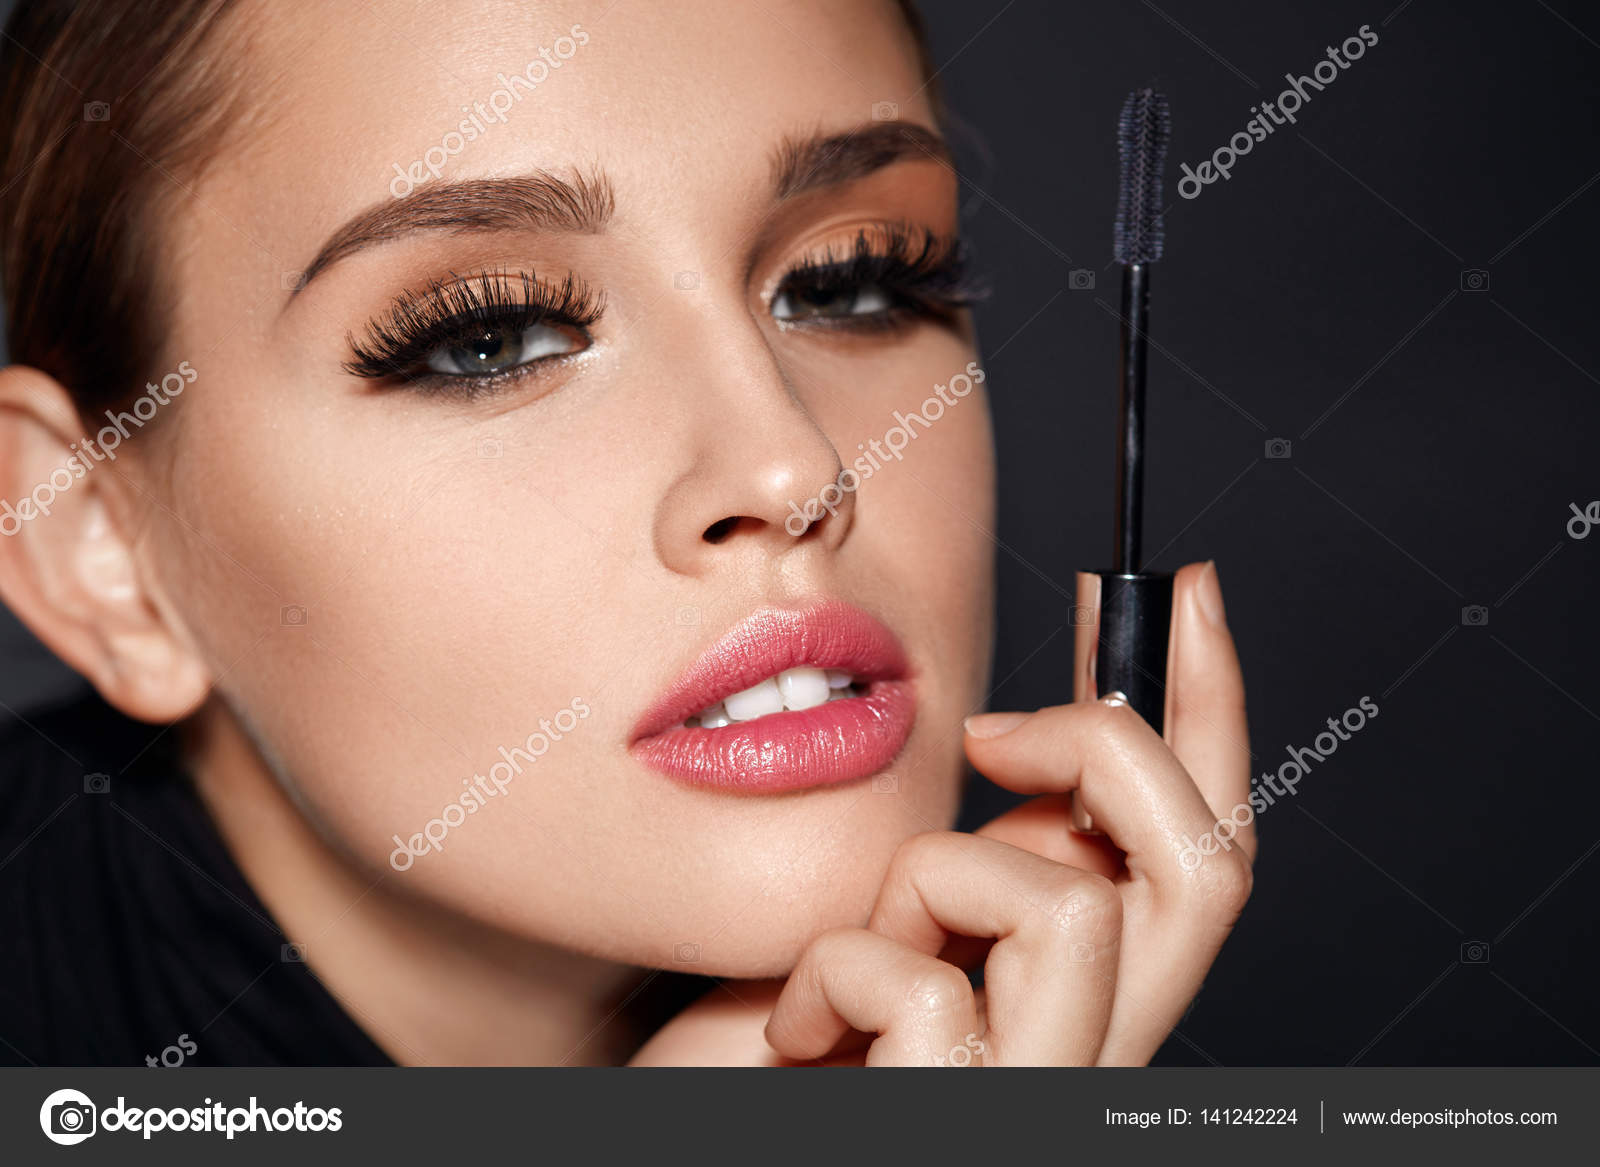 feba694ddc6 Facial Beauty. Closeup Of Sexy Woman With Beautiful Face And Mascara Brush  In Hand. Portrait Of Glamorous Girl With Perfect Makeup, Smooth Skin And  Long ...